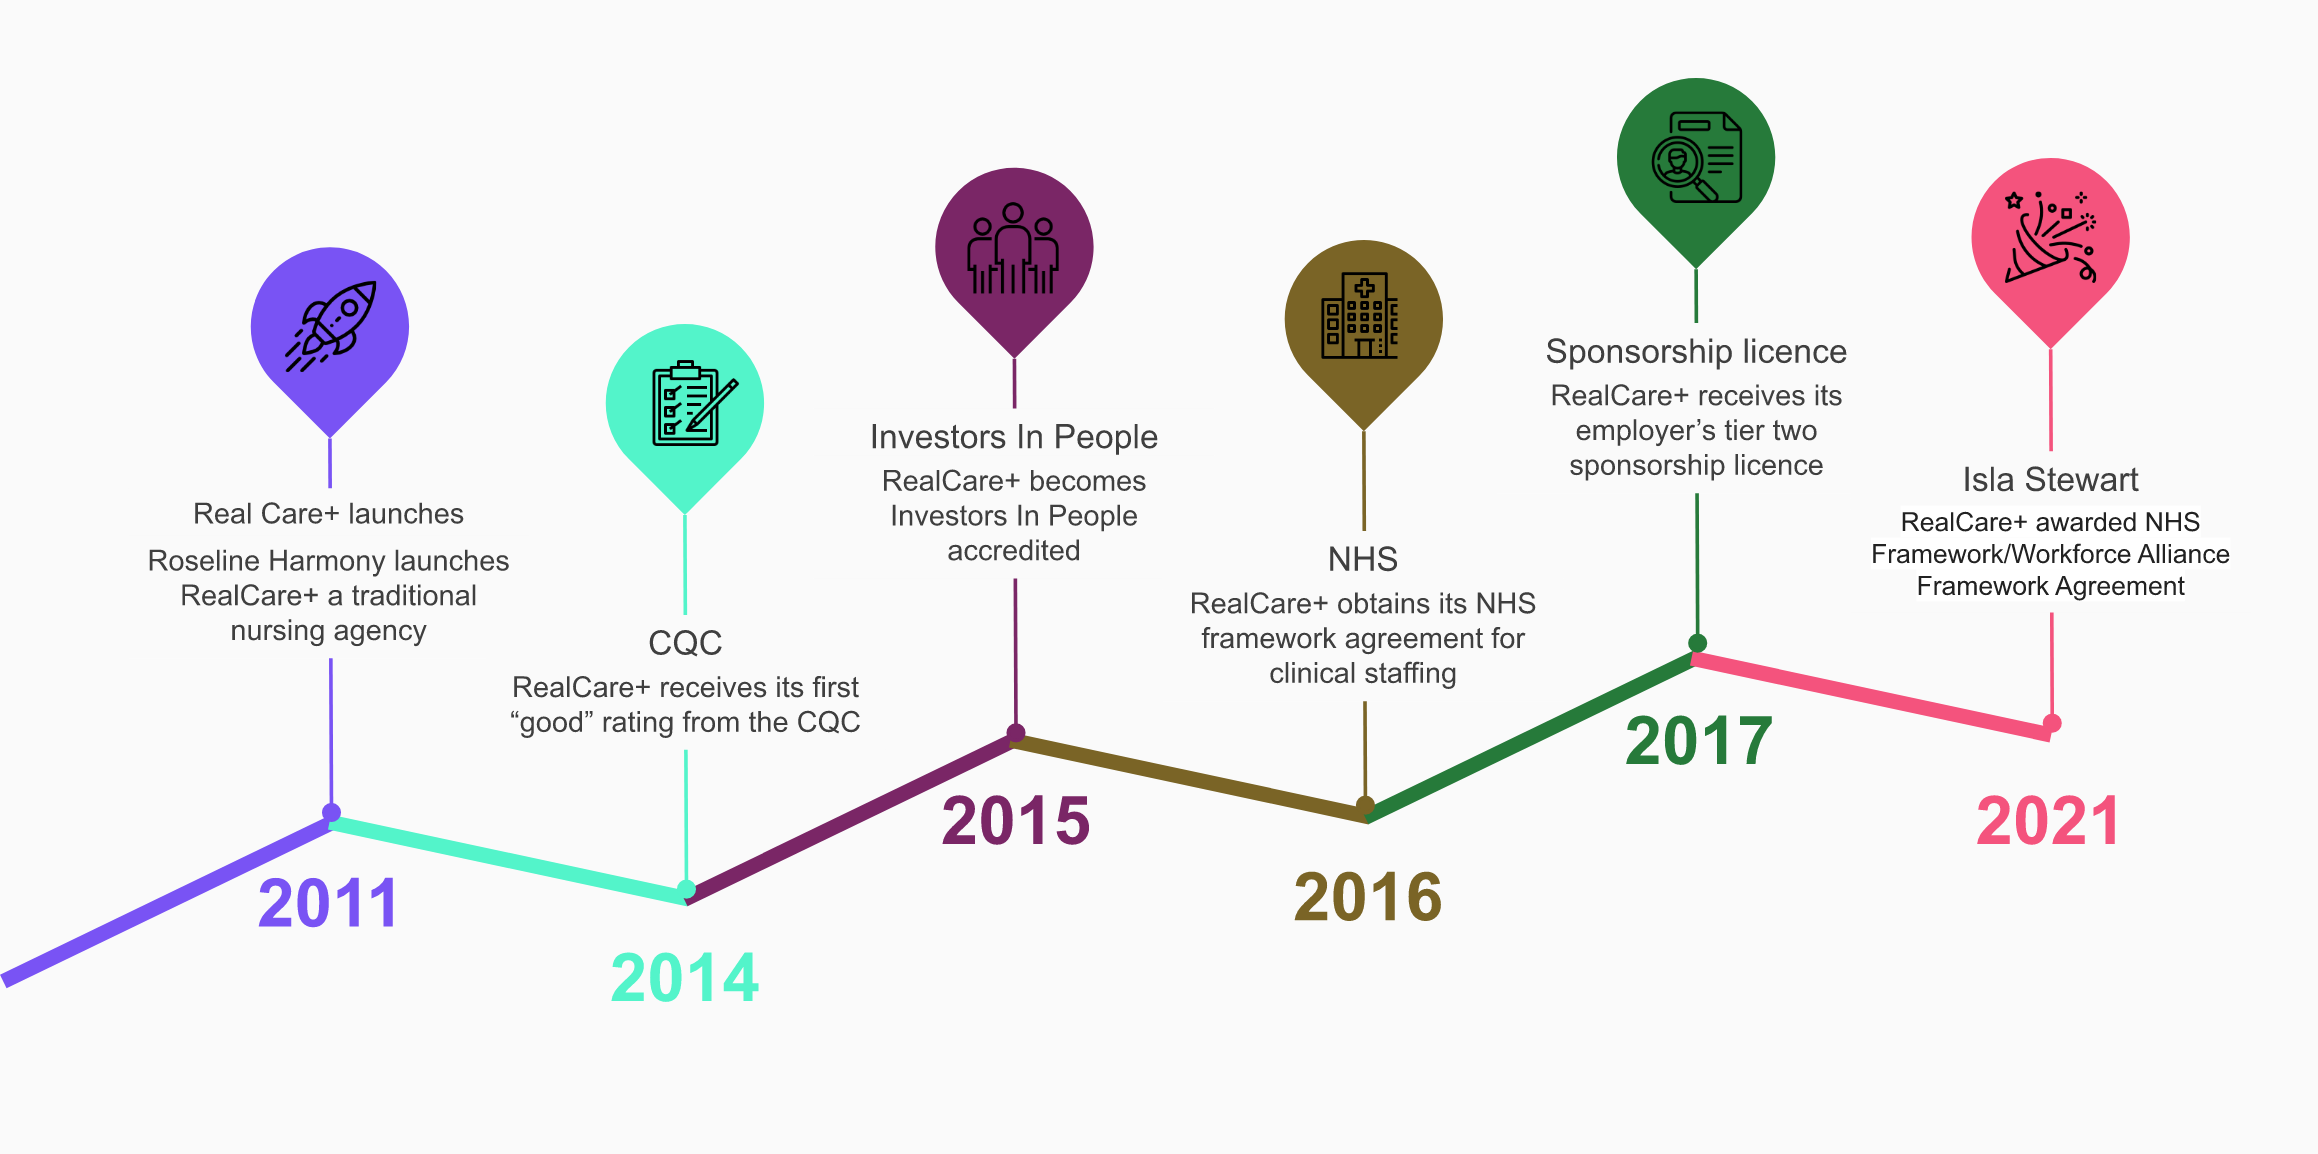 A timeline of RealCare and Isla Stewart